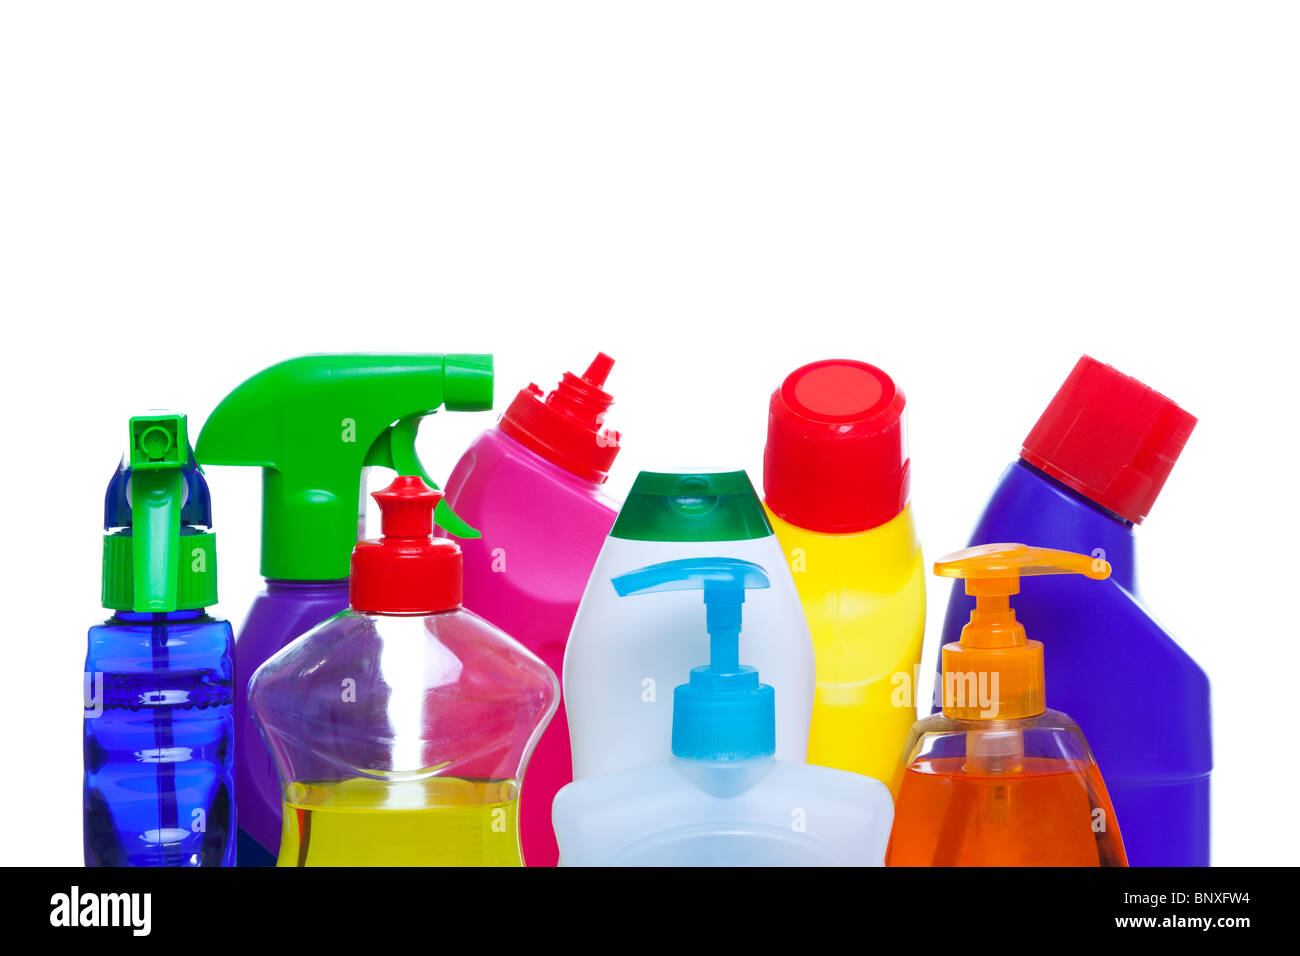 Photo of cleaning chemical bottles isoalted on a white background. - Stock Image